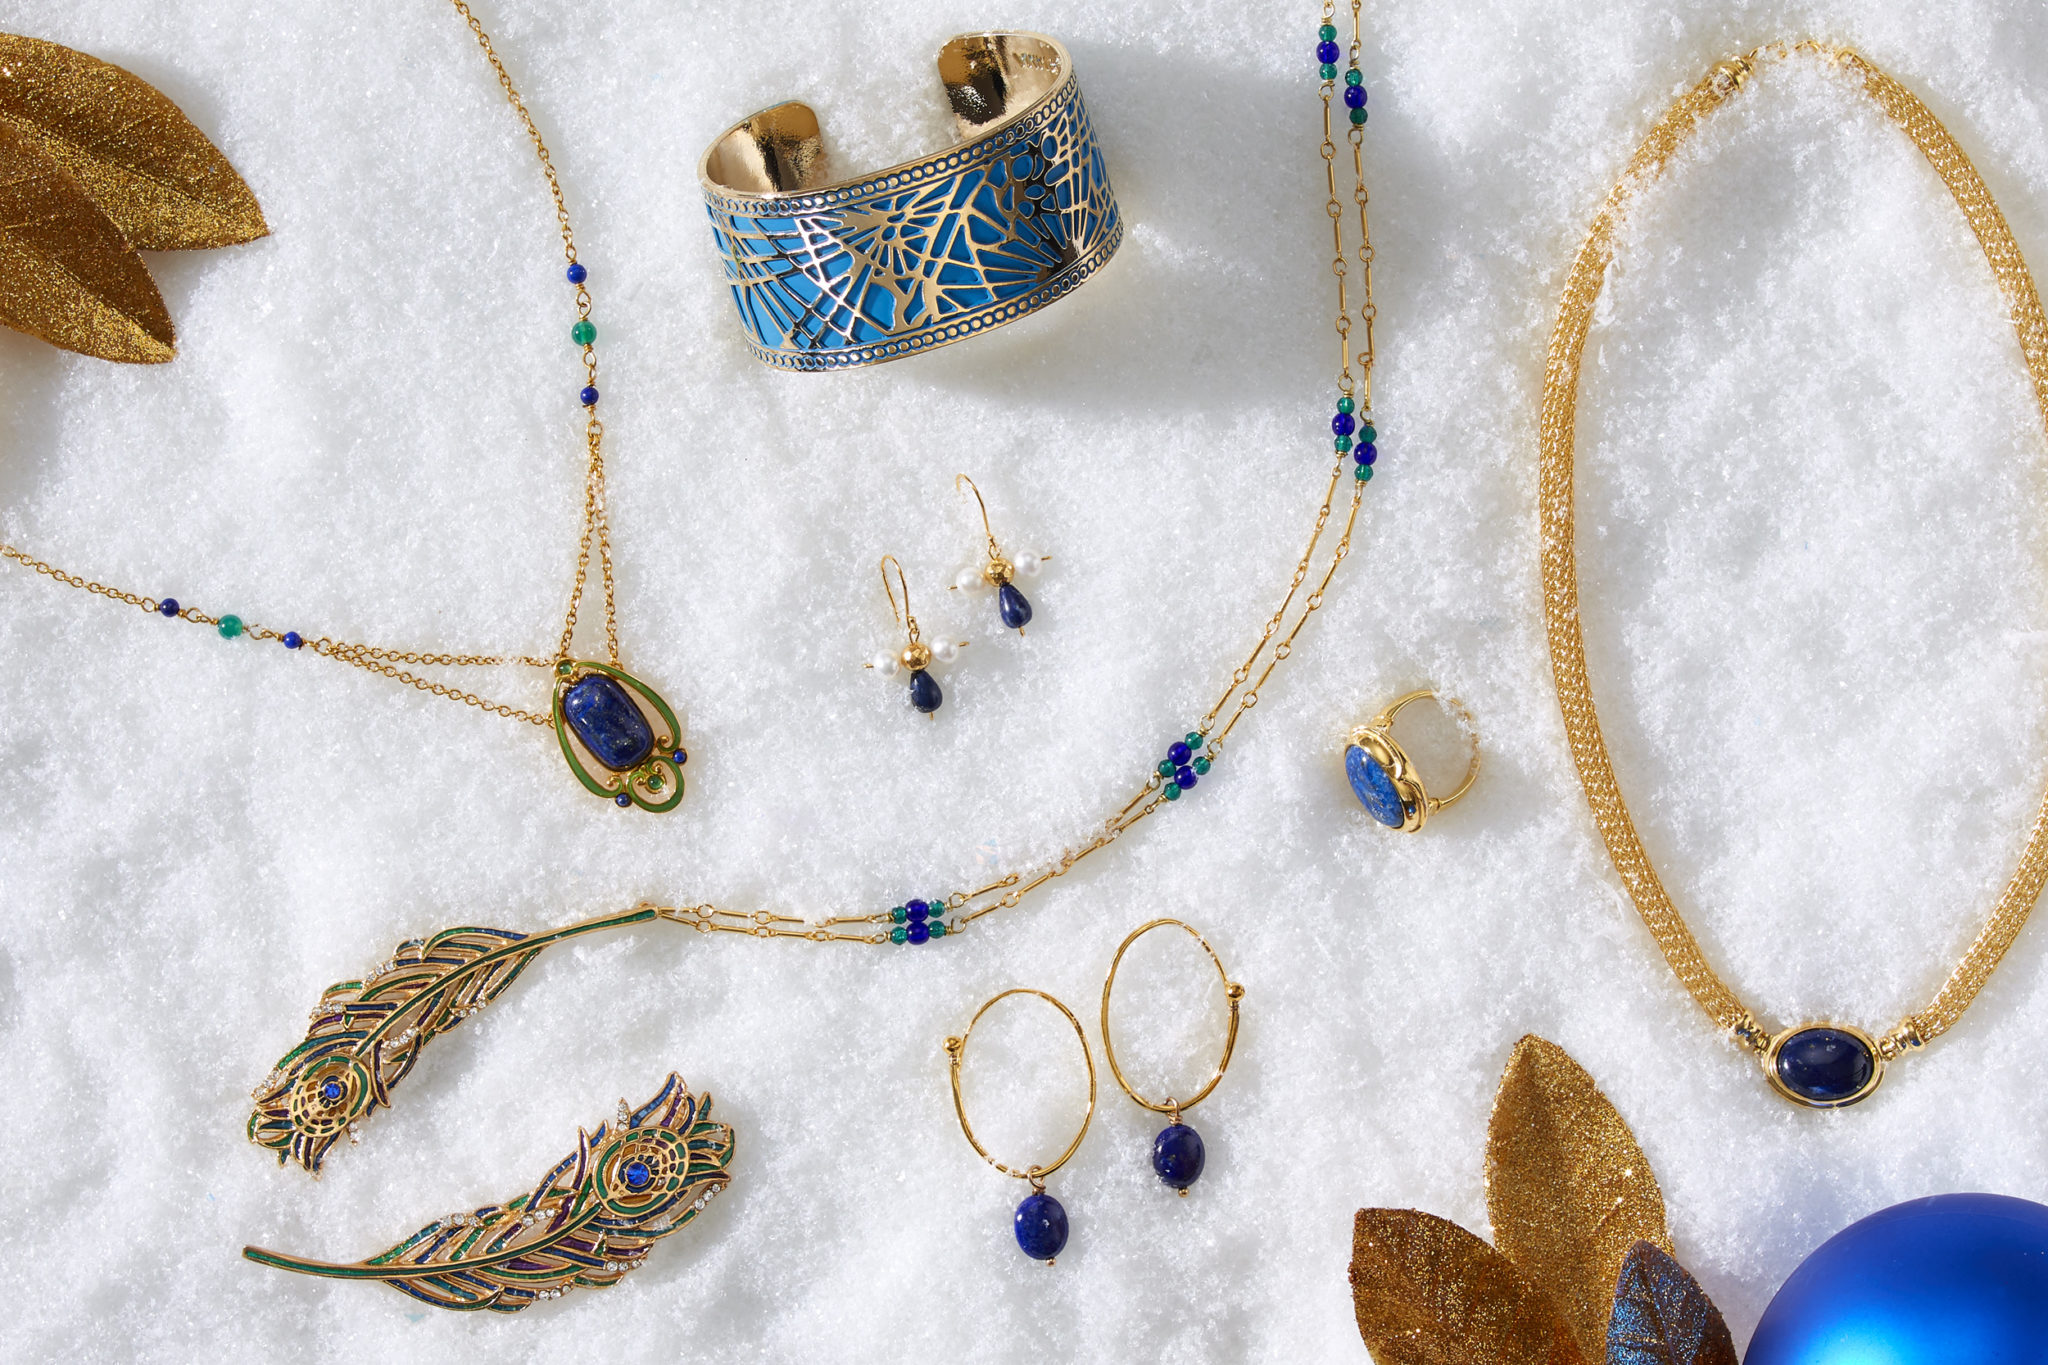 marketing still life photograph of blue, gold, and lapis jewelry including necklaces, earrings, a ring, a bracelet, and a pin on snow